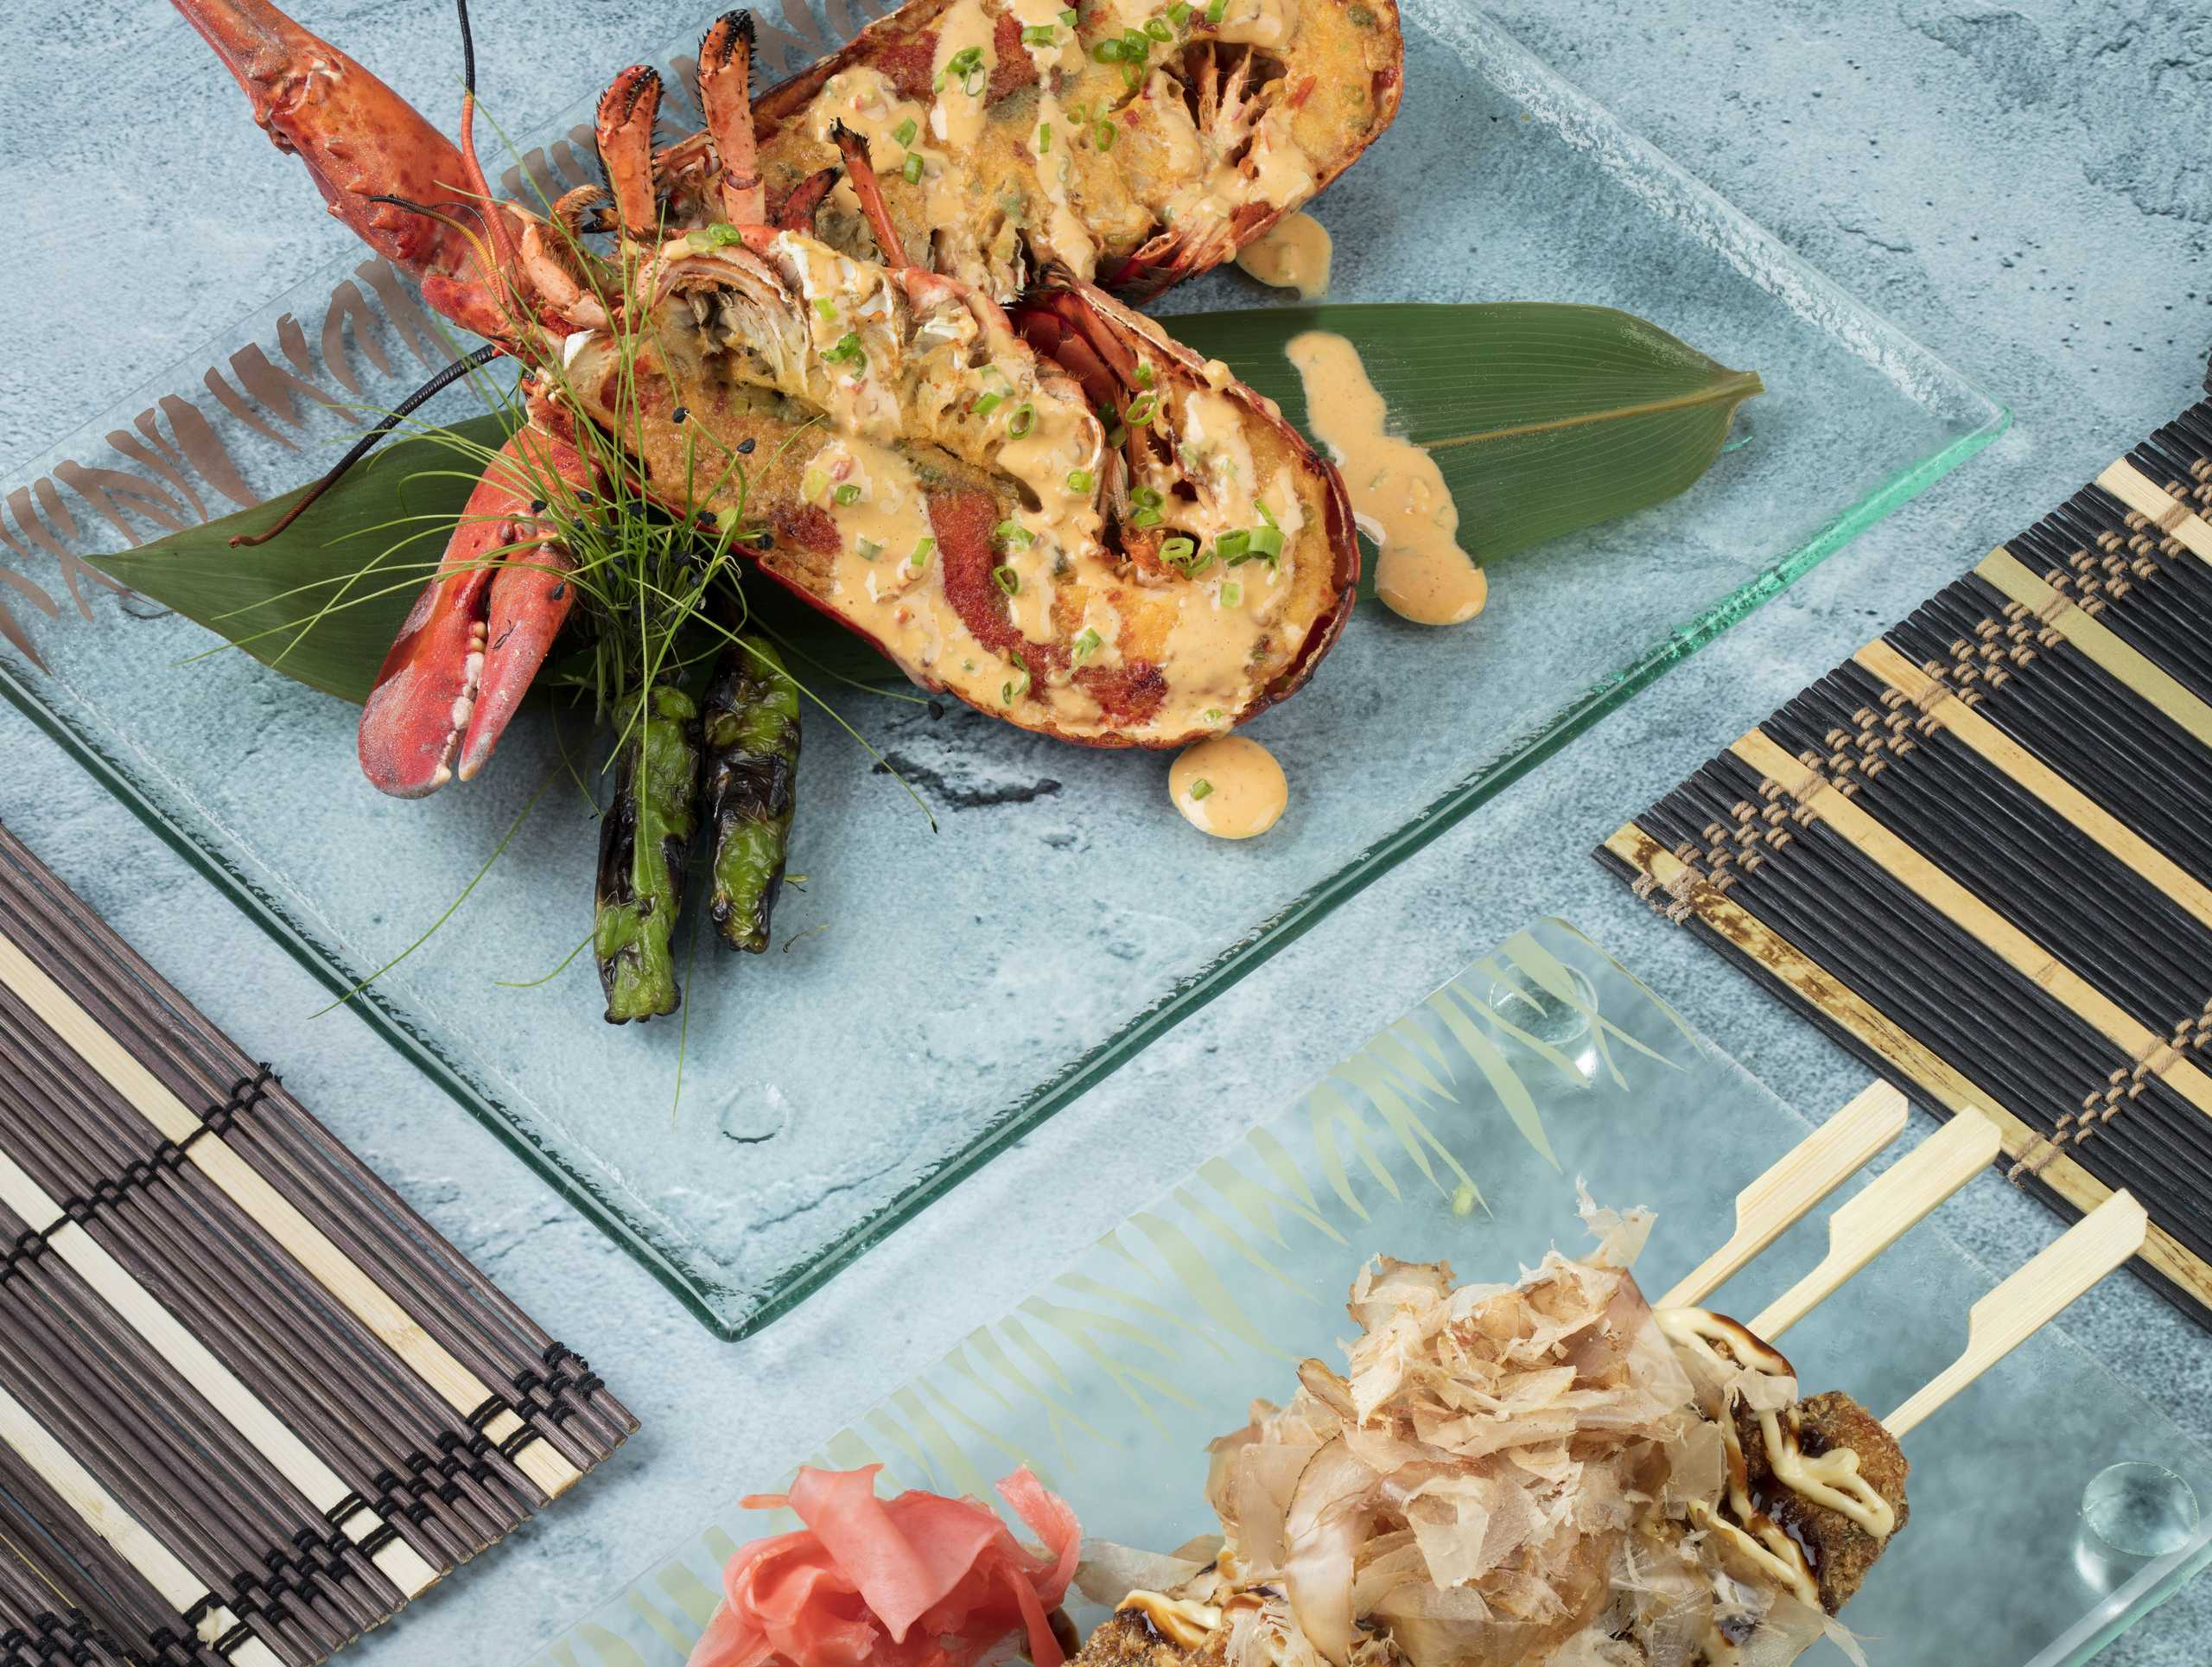 Palms Café and Bar Baked lobster with spicy lemon garlic sause, Beef agemono with kewpie mayo and katsuobushi